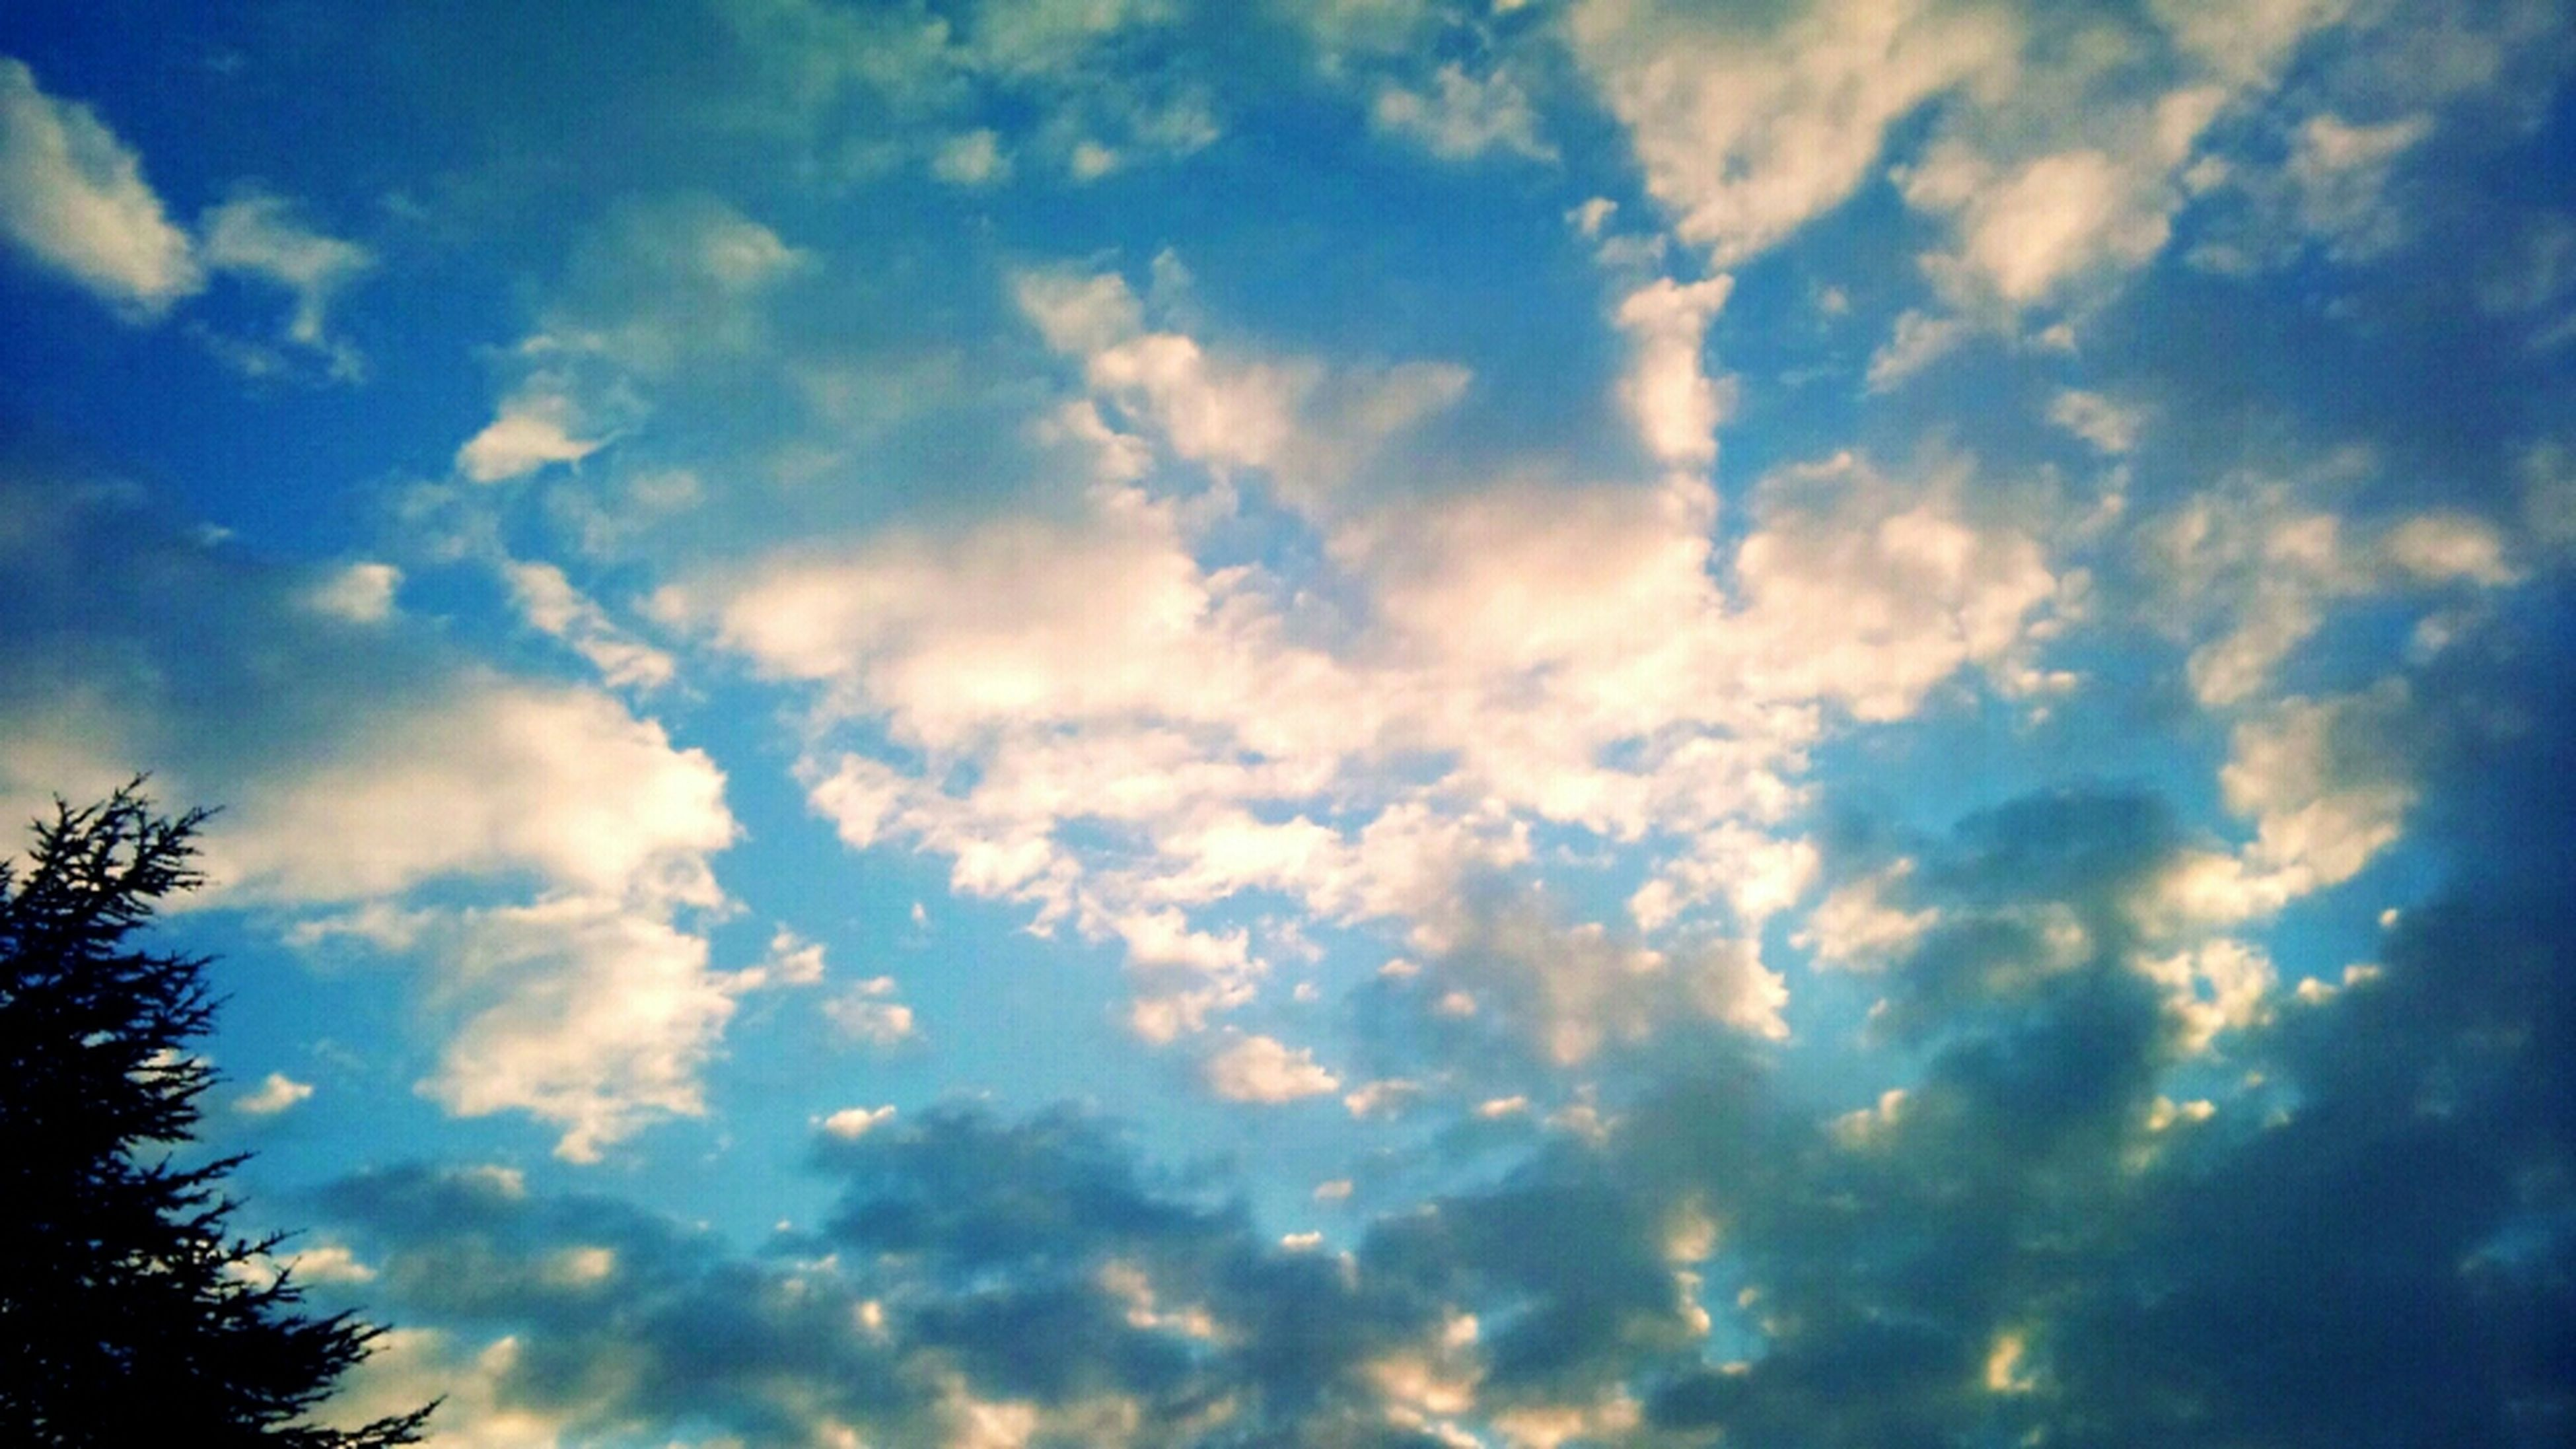 low angle view, sky, cloud - sky, tranquility, beauty in nature, cloudy, scenics, nature, tranquil scene, cloud, cloudscape, blue, sky only, silhouette, tree, idyllic, outdoors, backgrounds, no people, day